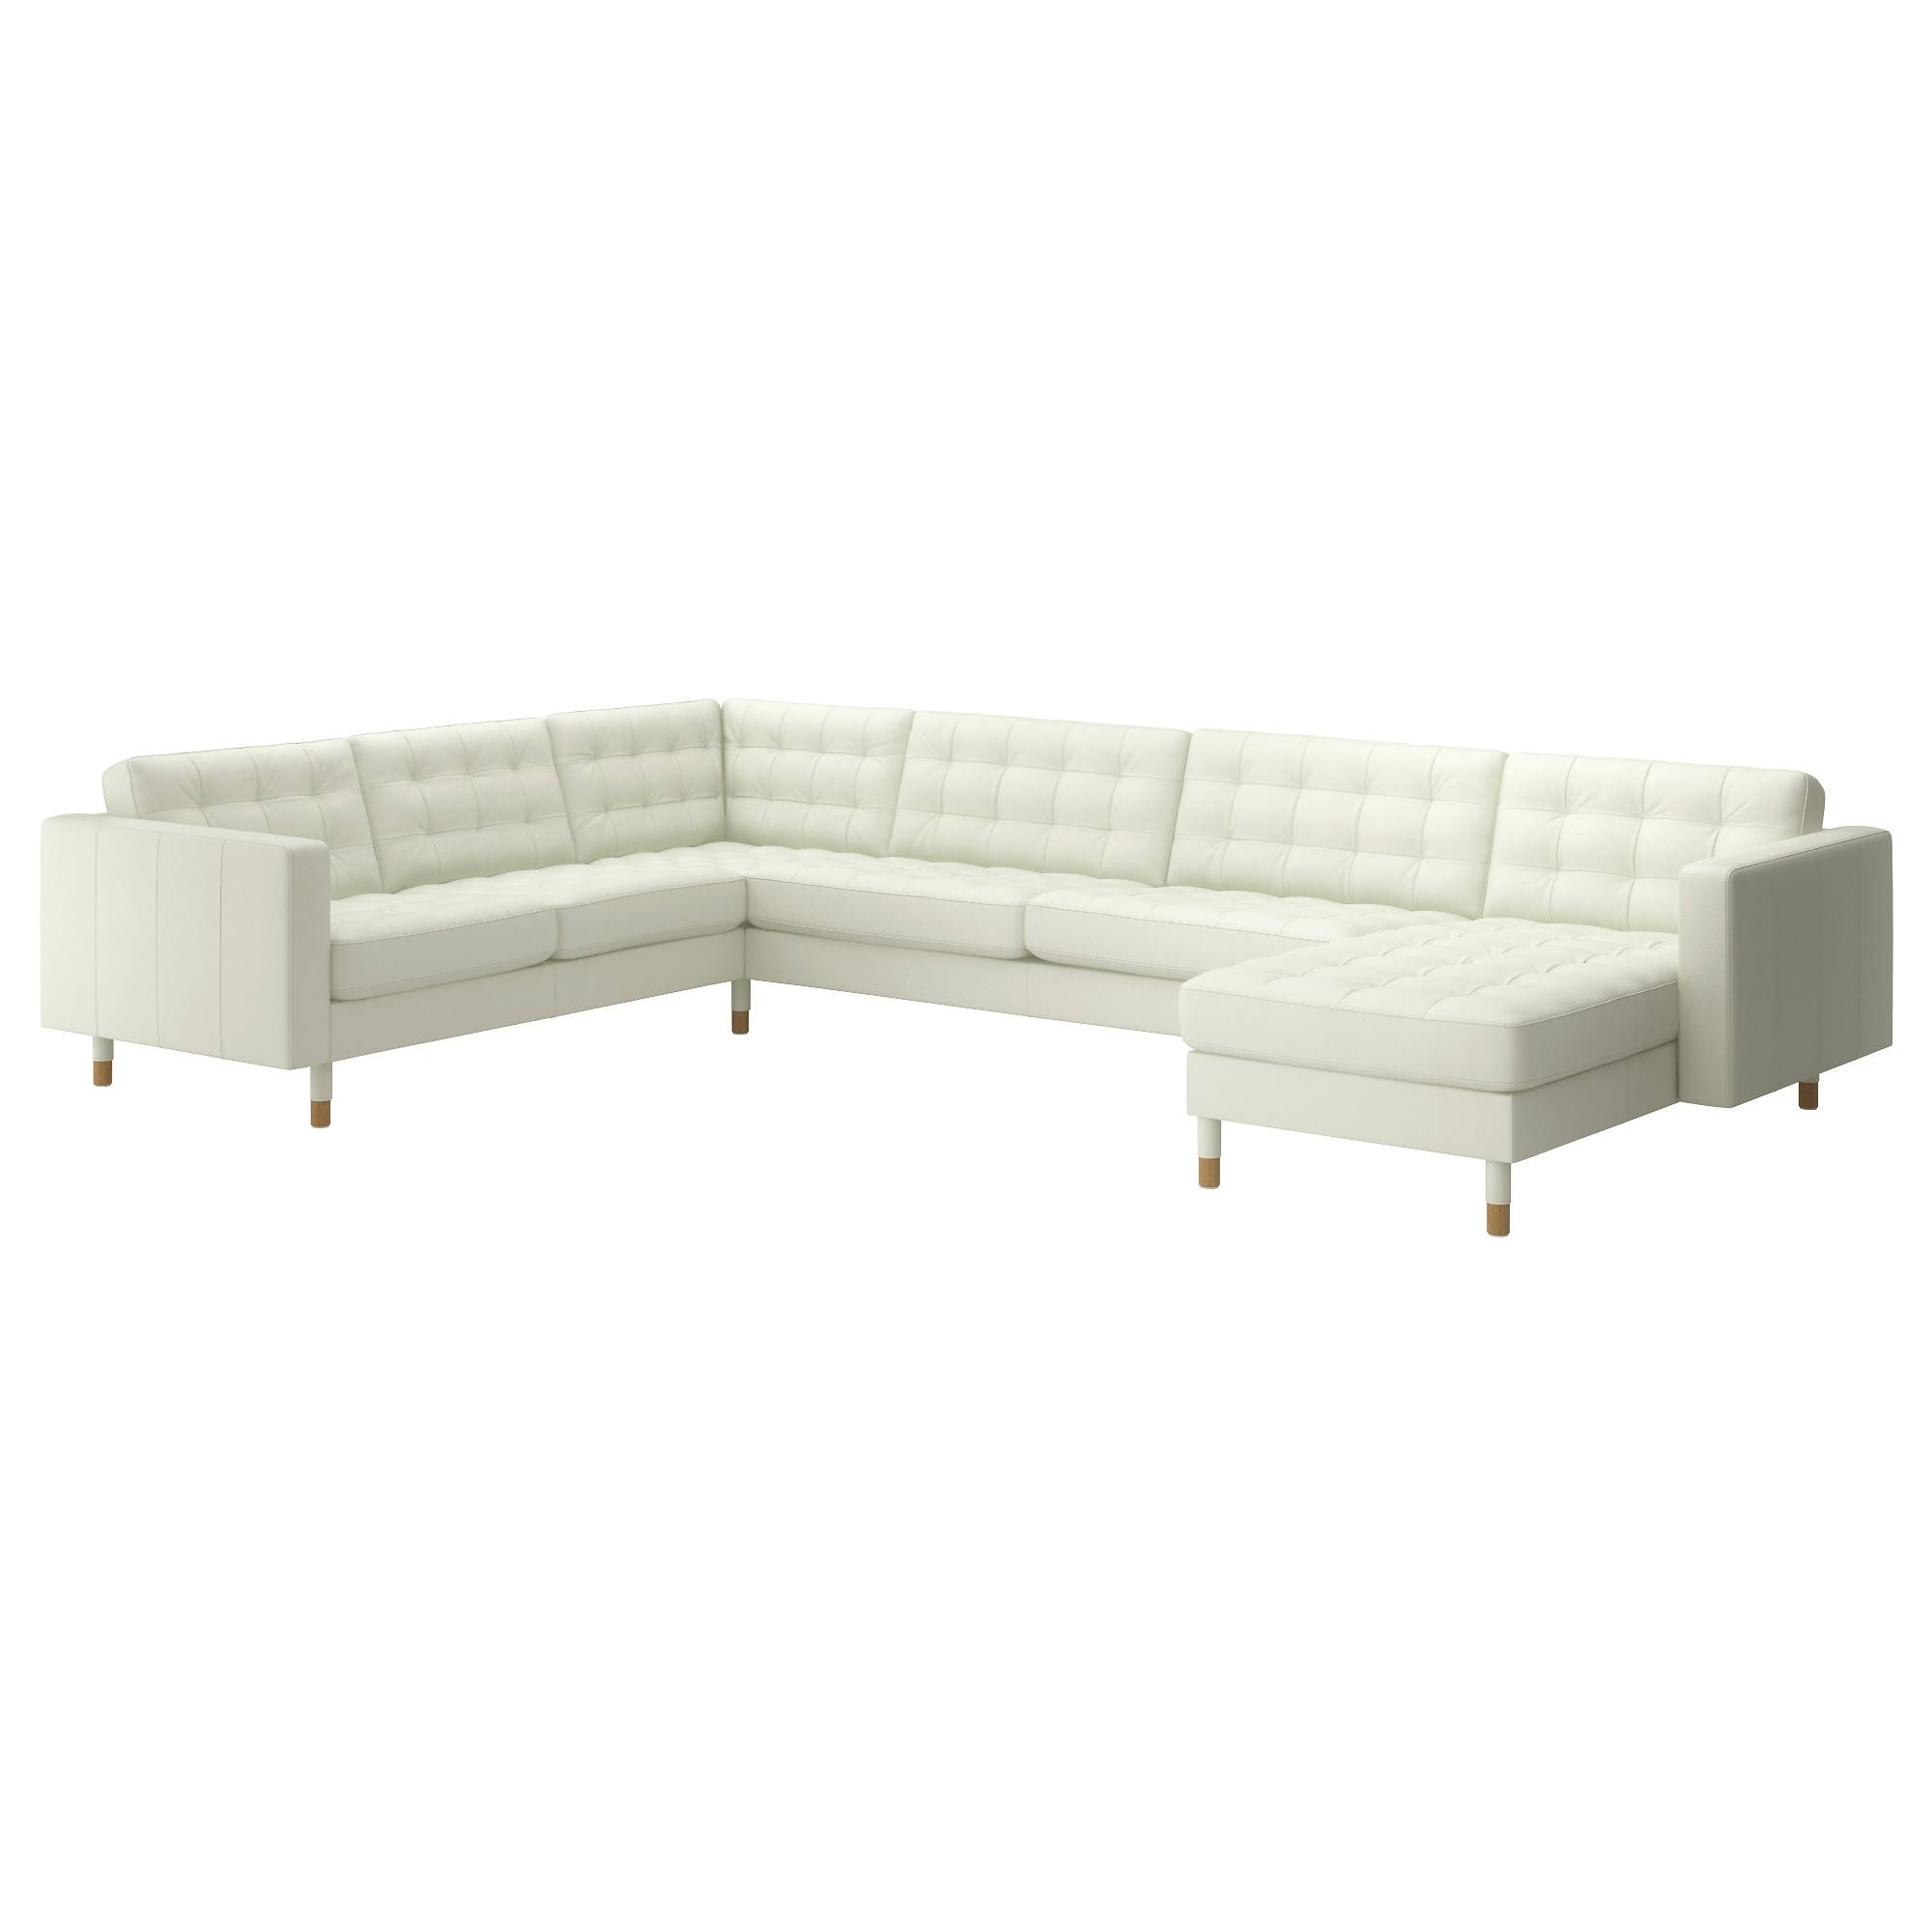 Sectional Sofas & Couches – Ikea Inside Ikea Sectional Sofa Sleeper (View 17 of 25)